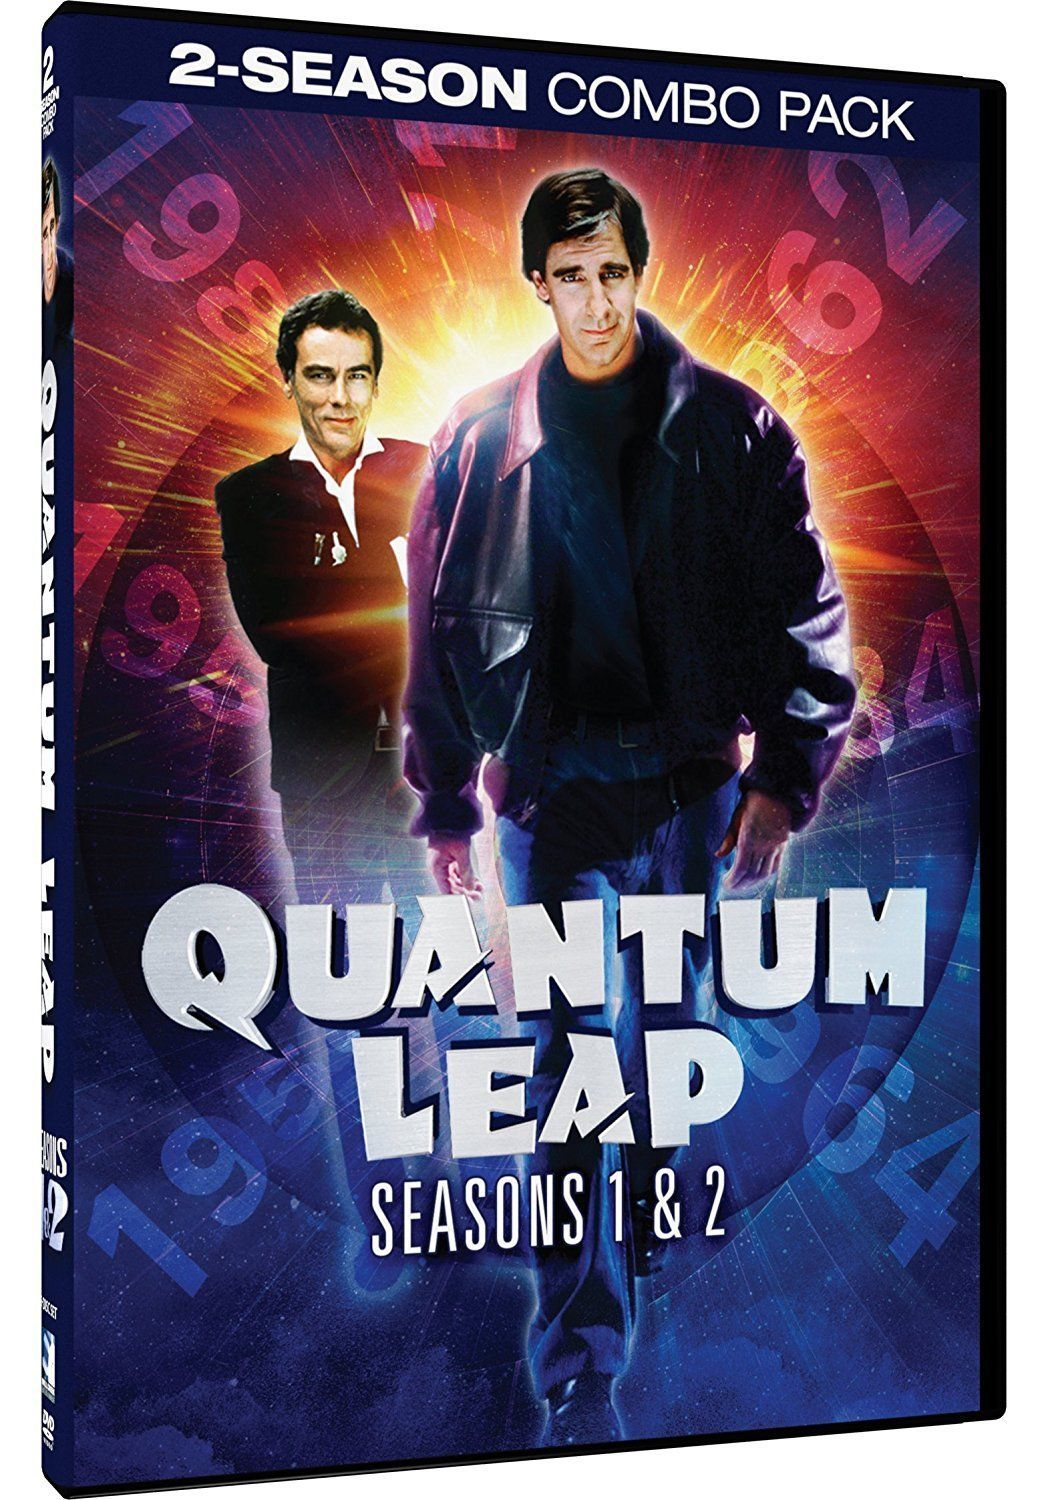 Quantum Leap Complete First Second Season 1 & 2 DVD Set Episodes Show TV One Two